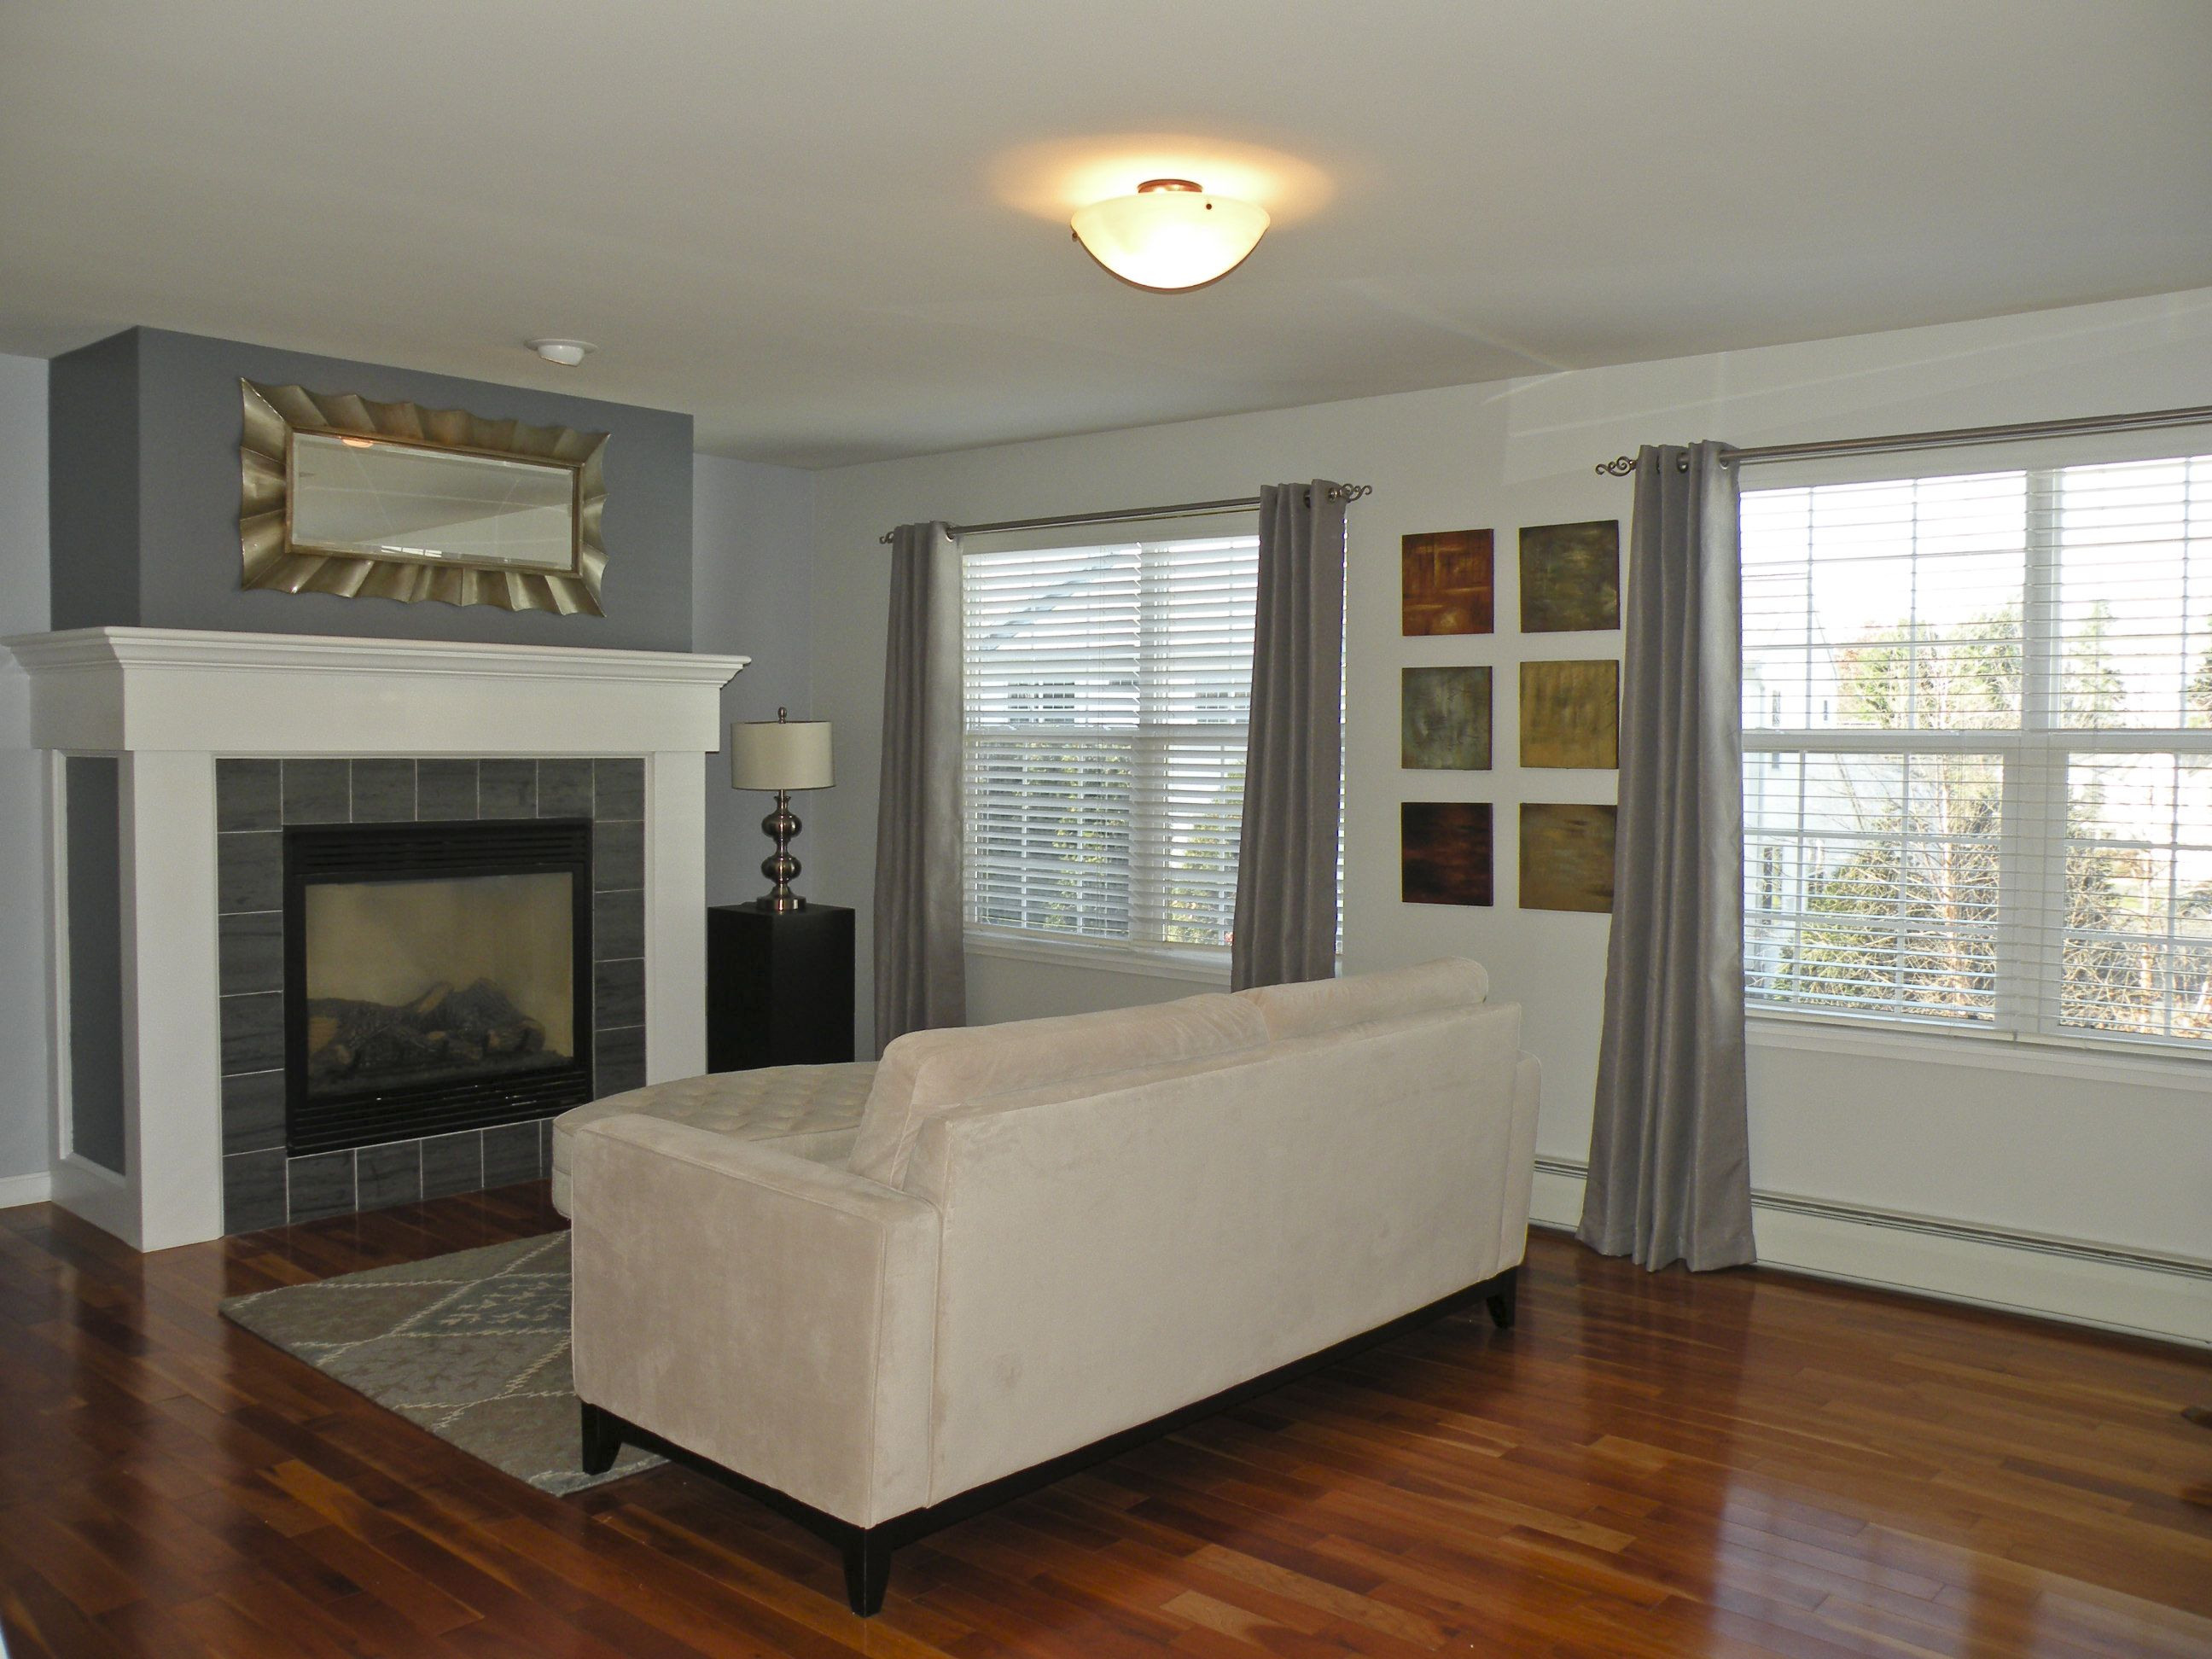 Superior Sunny Living Room With Fireplace And Beautiful Hardwood Floor